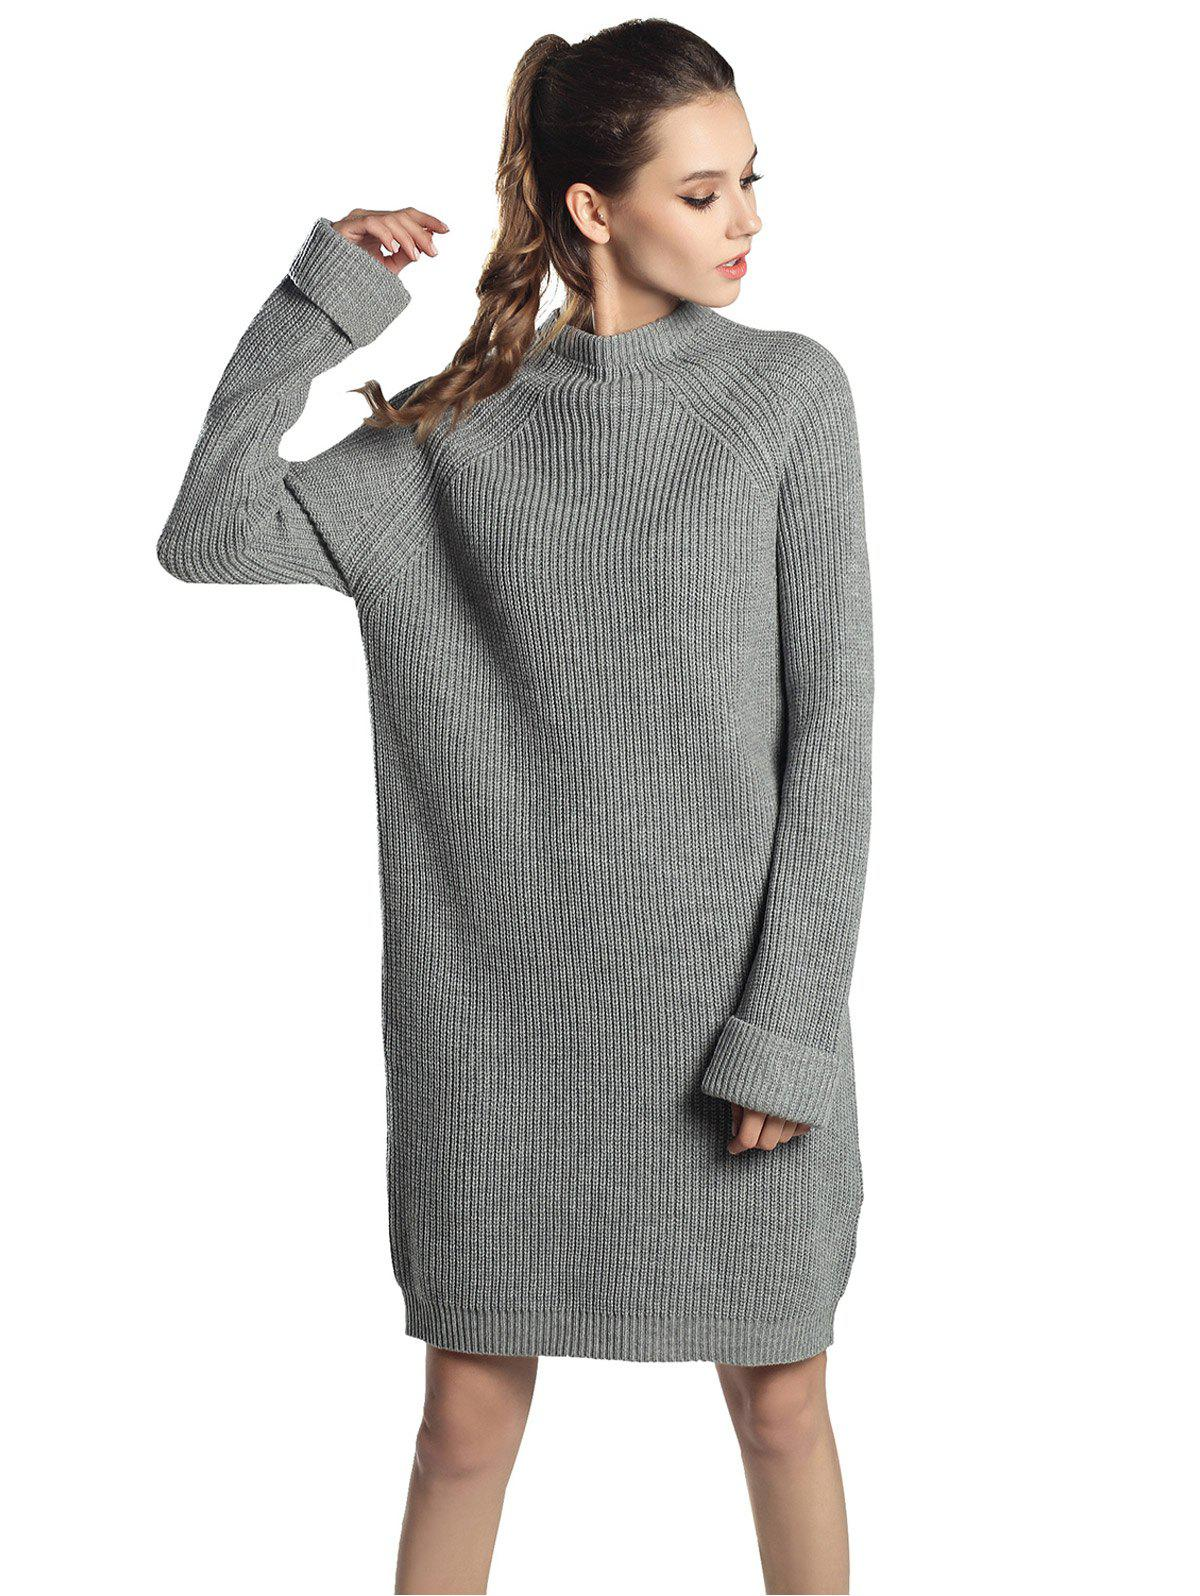 Shops High Neck Raglan sleeve knit sweater Mini dress